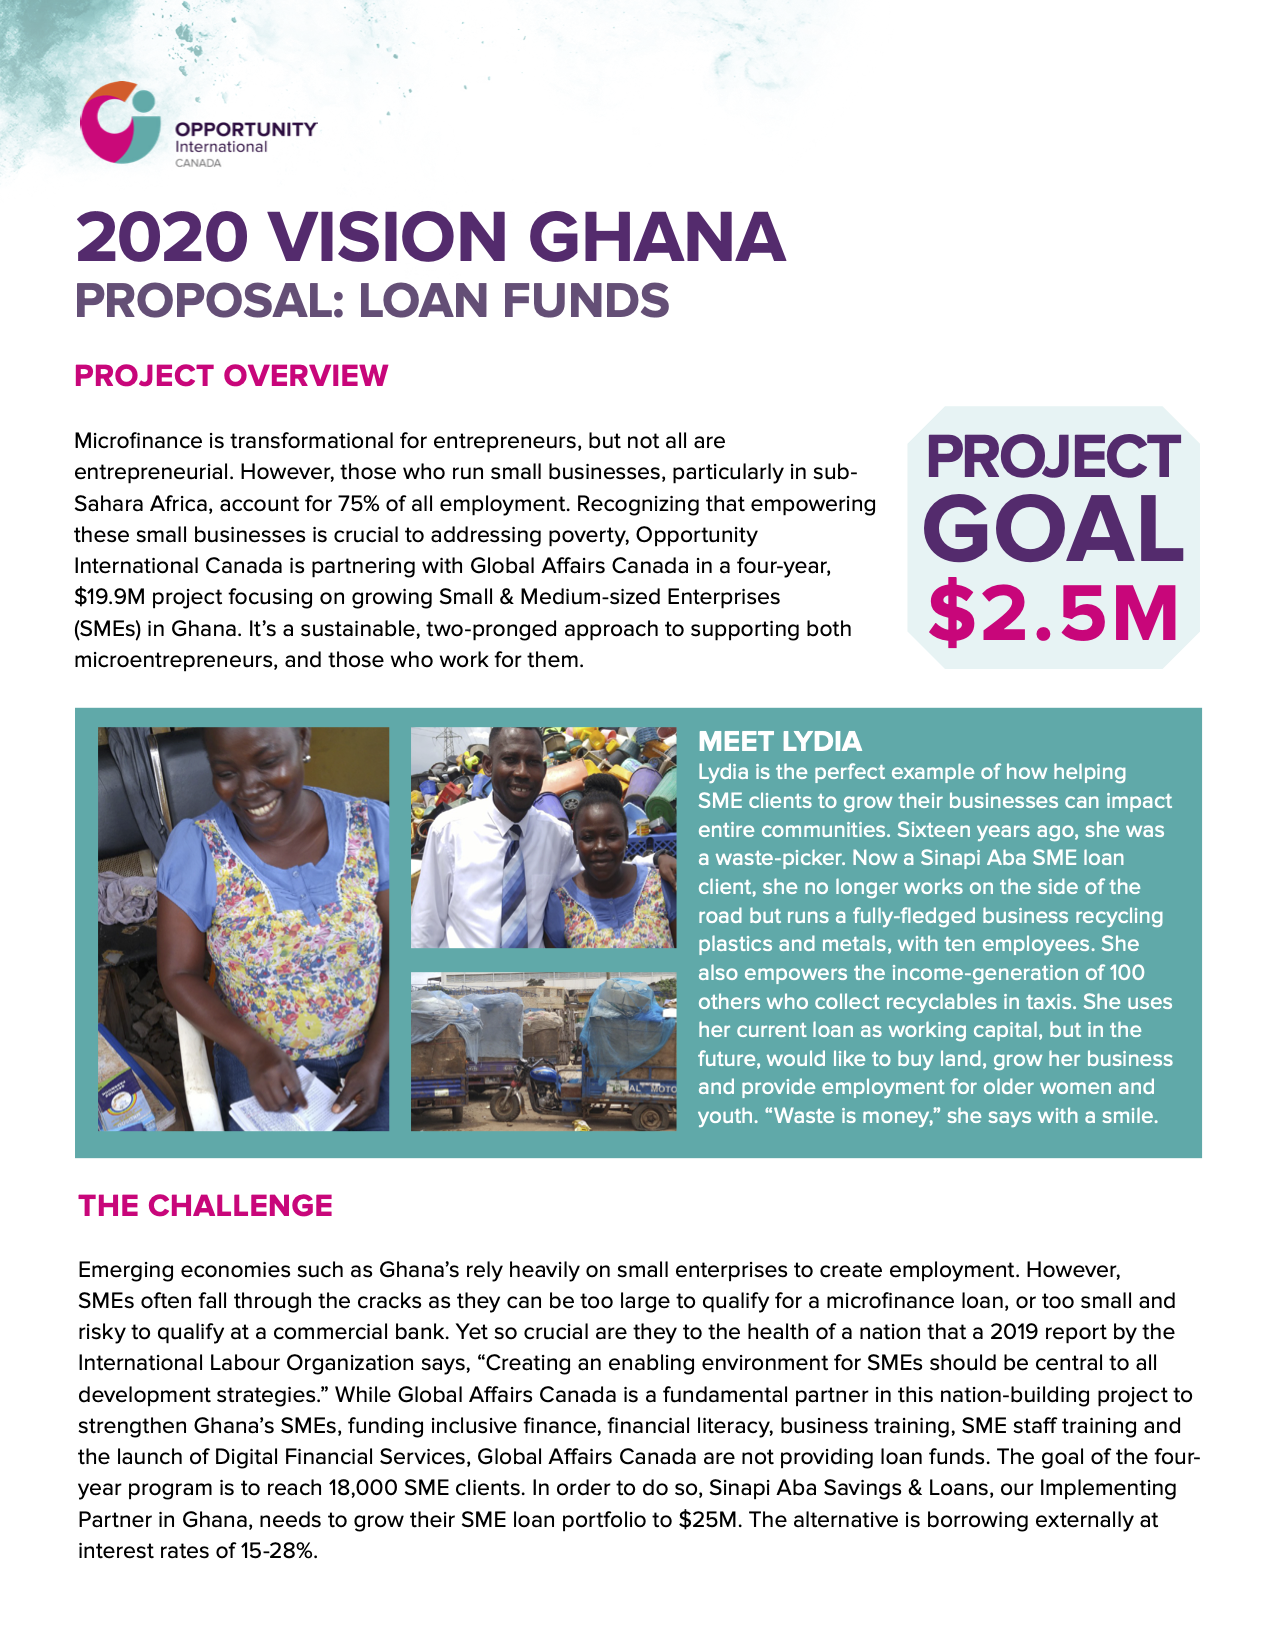 Ghana_Loan Funds_Proposal 2020